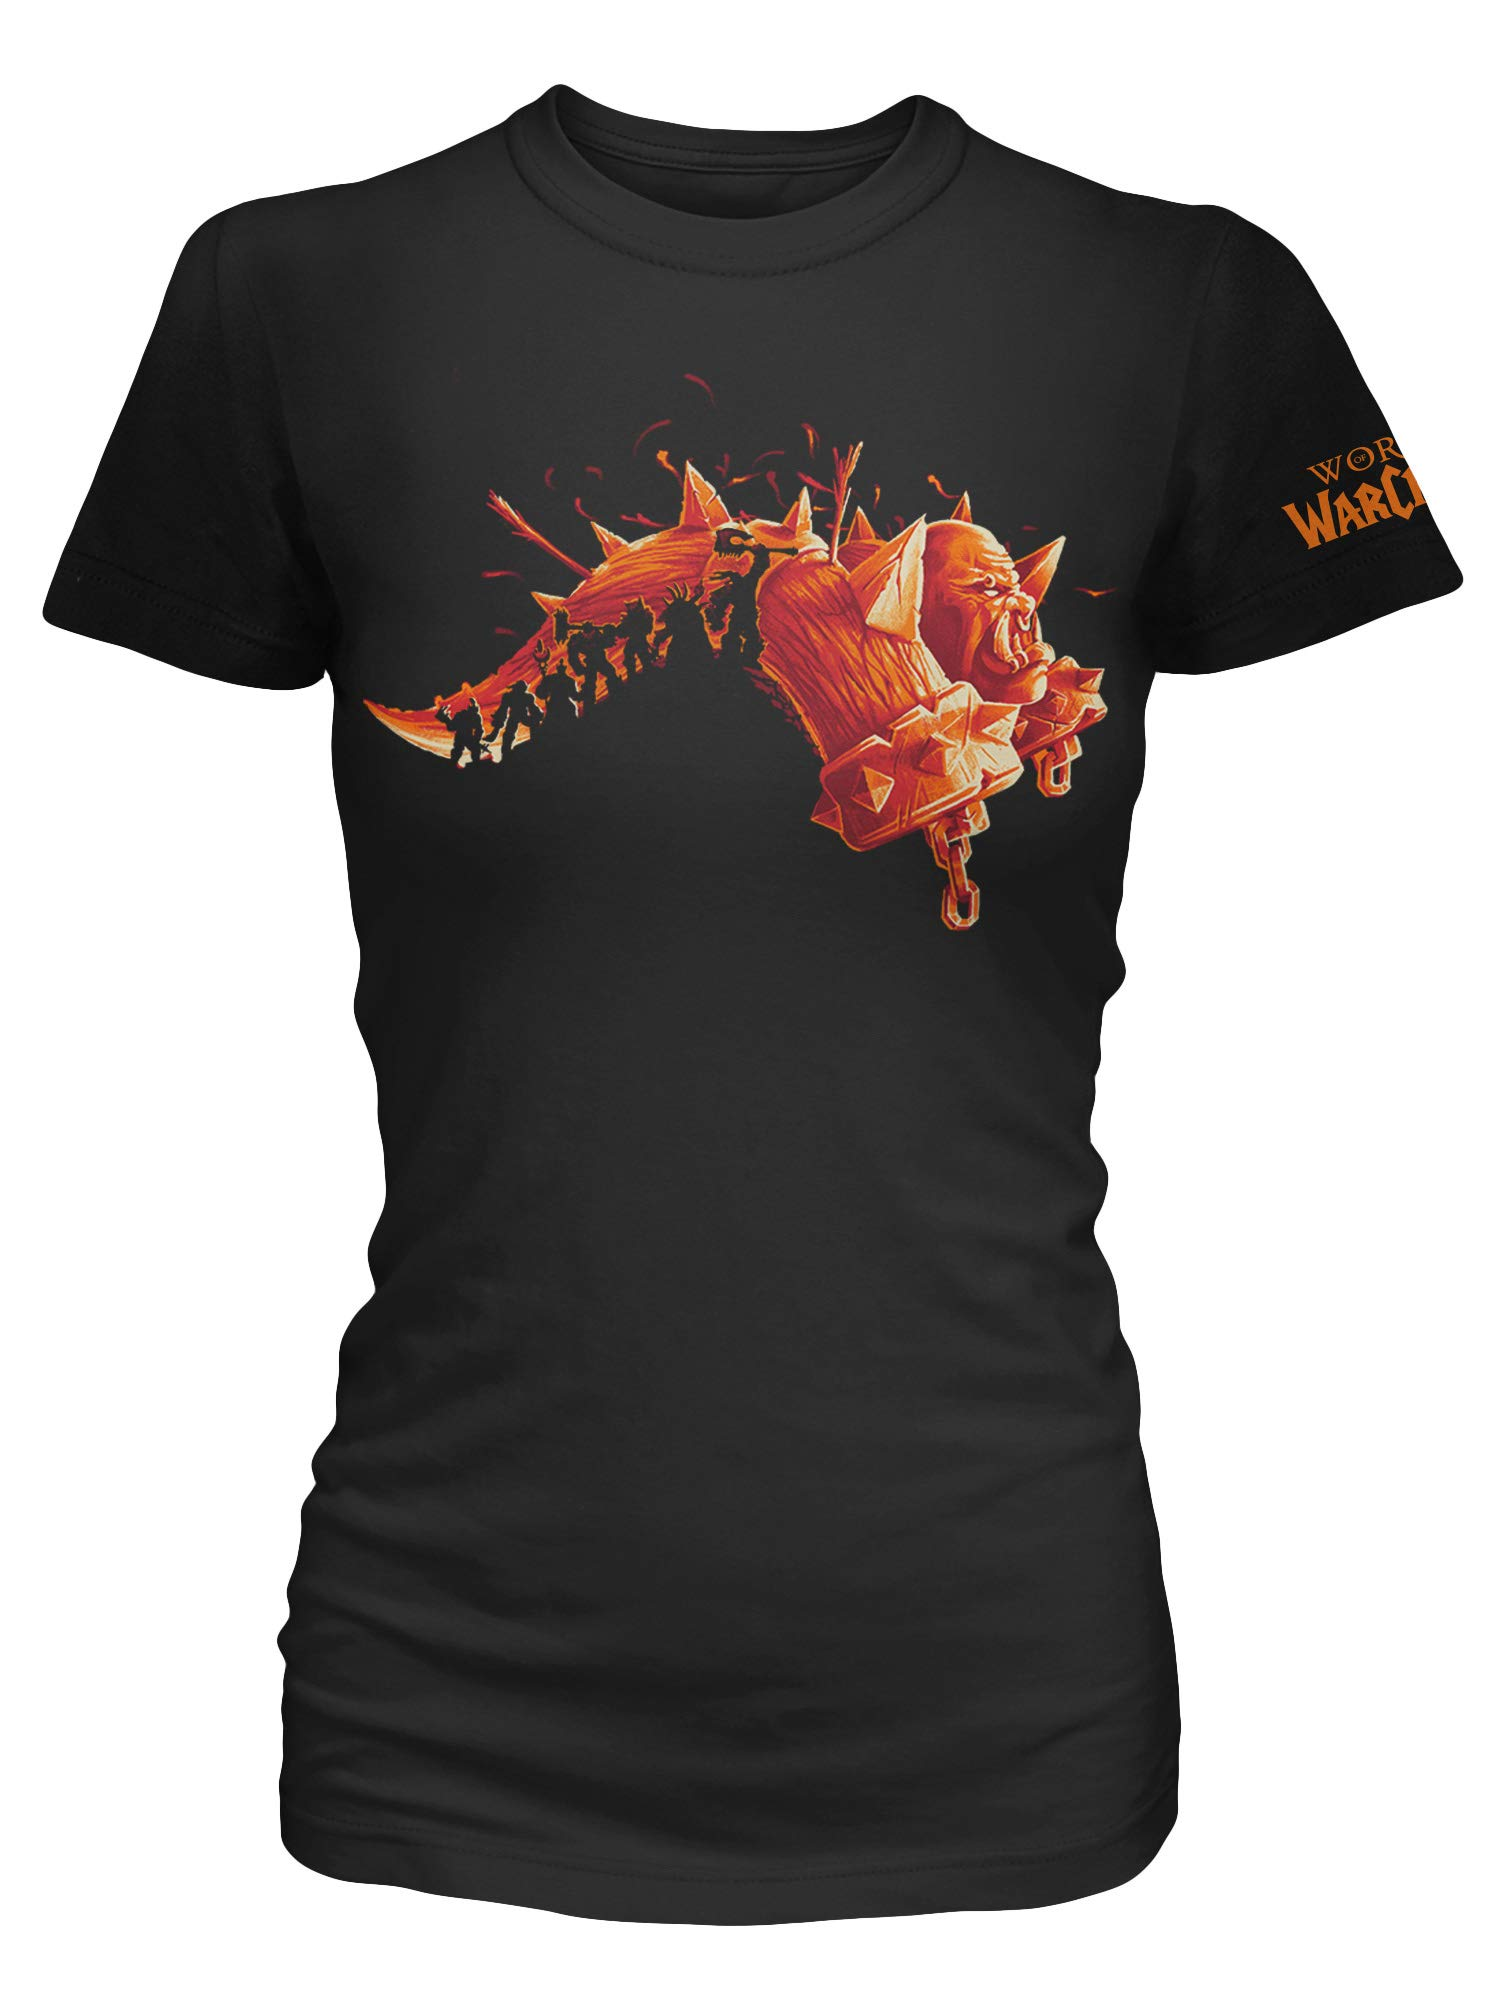 JINX World of Warcraft Warlords of Draenor (Expansion Series) Women's Gamer Tee Shirt